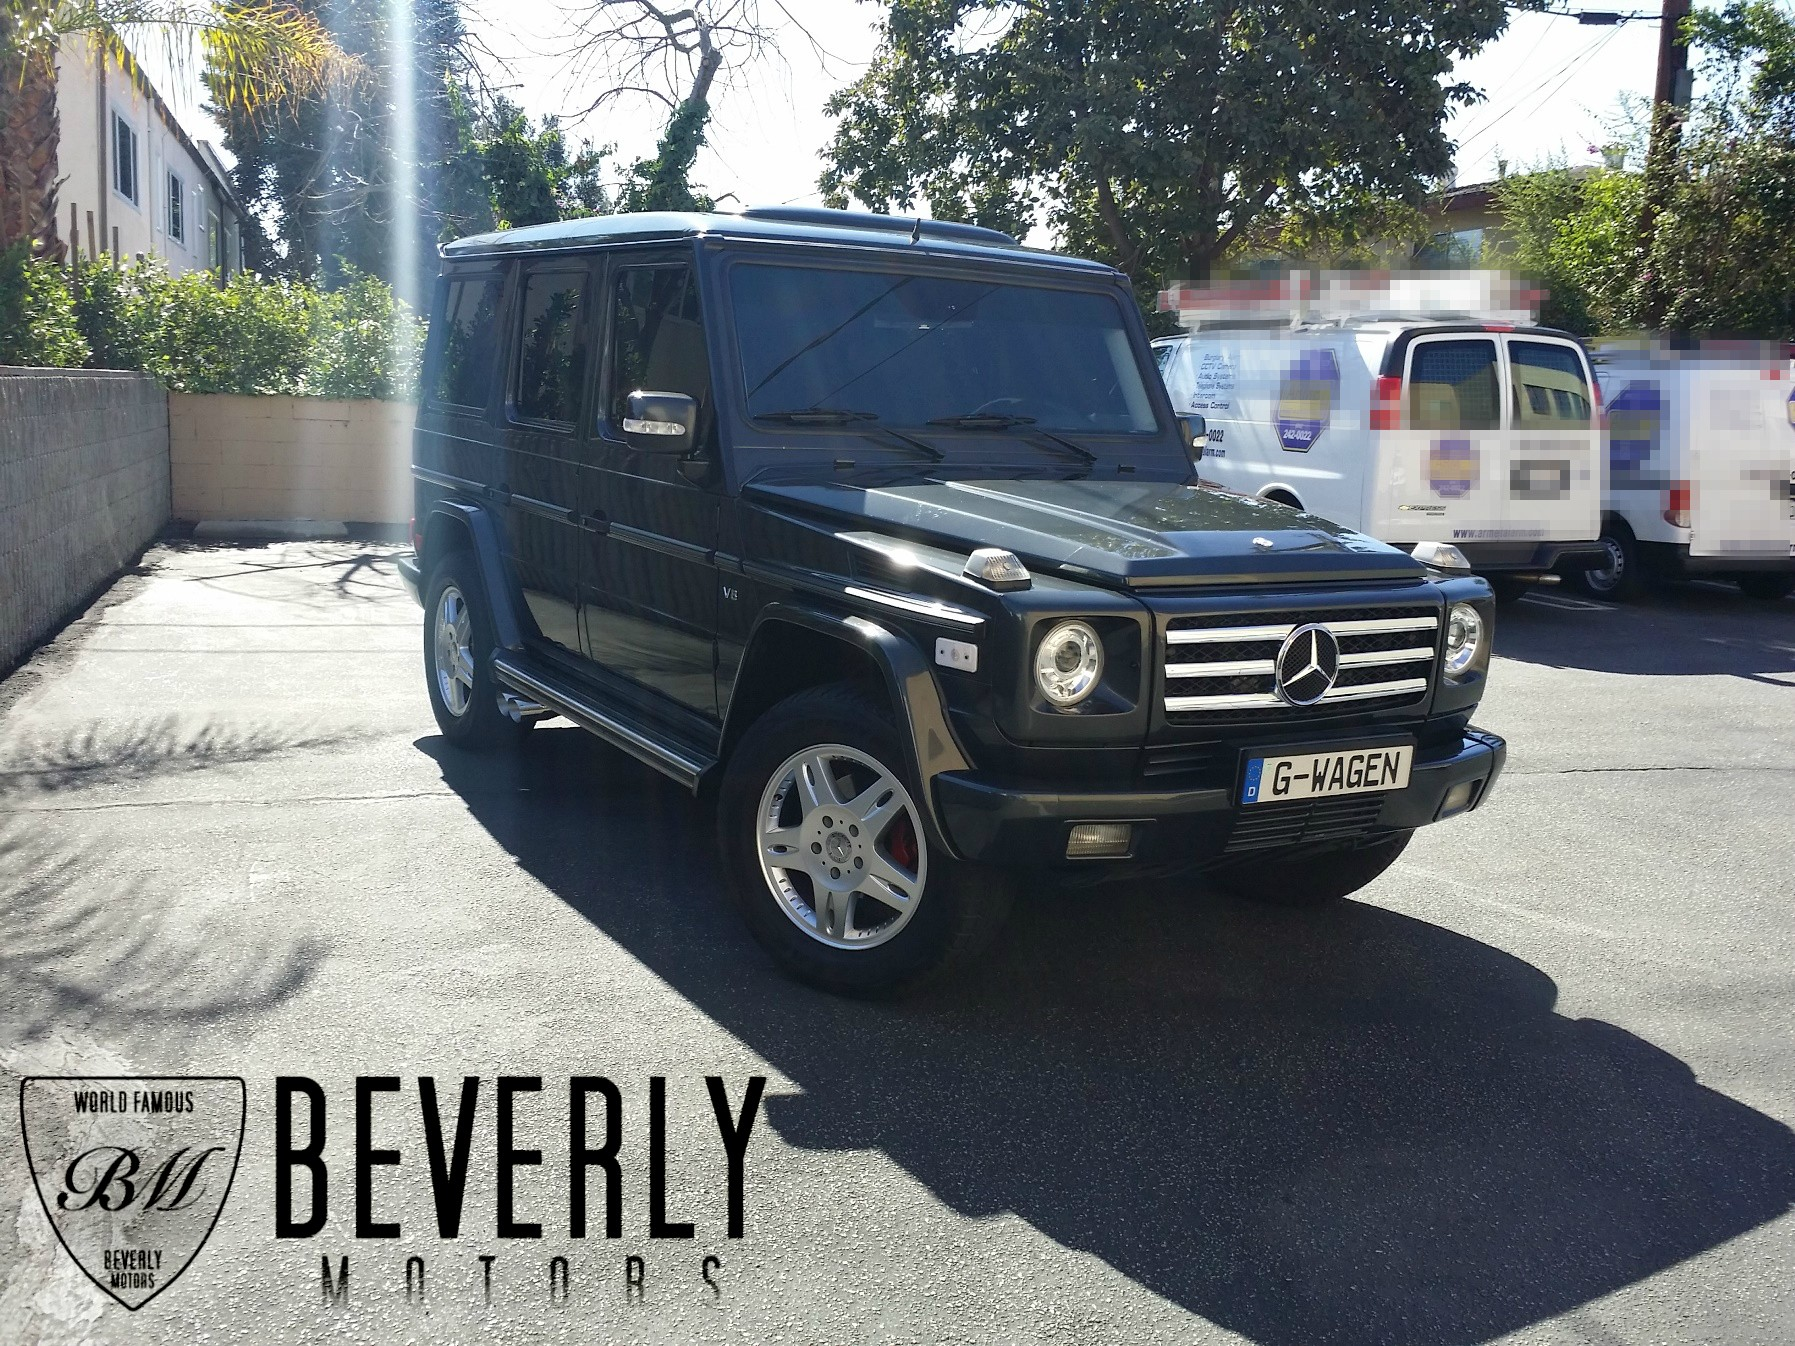 Business Lease Car Deals G Wagon Lease Deals Browsesmart Deals